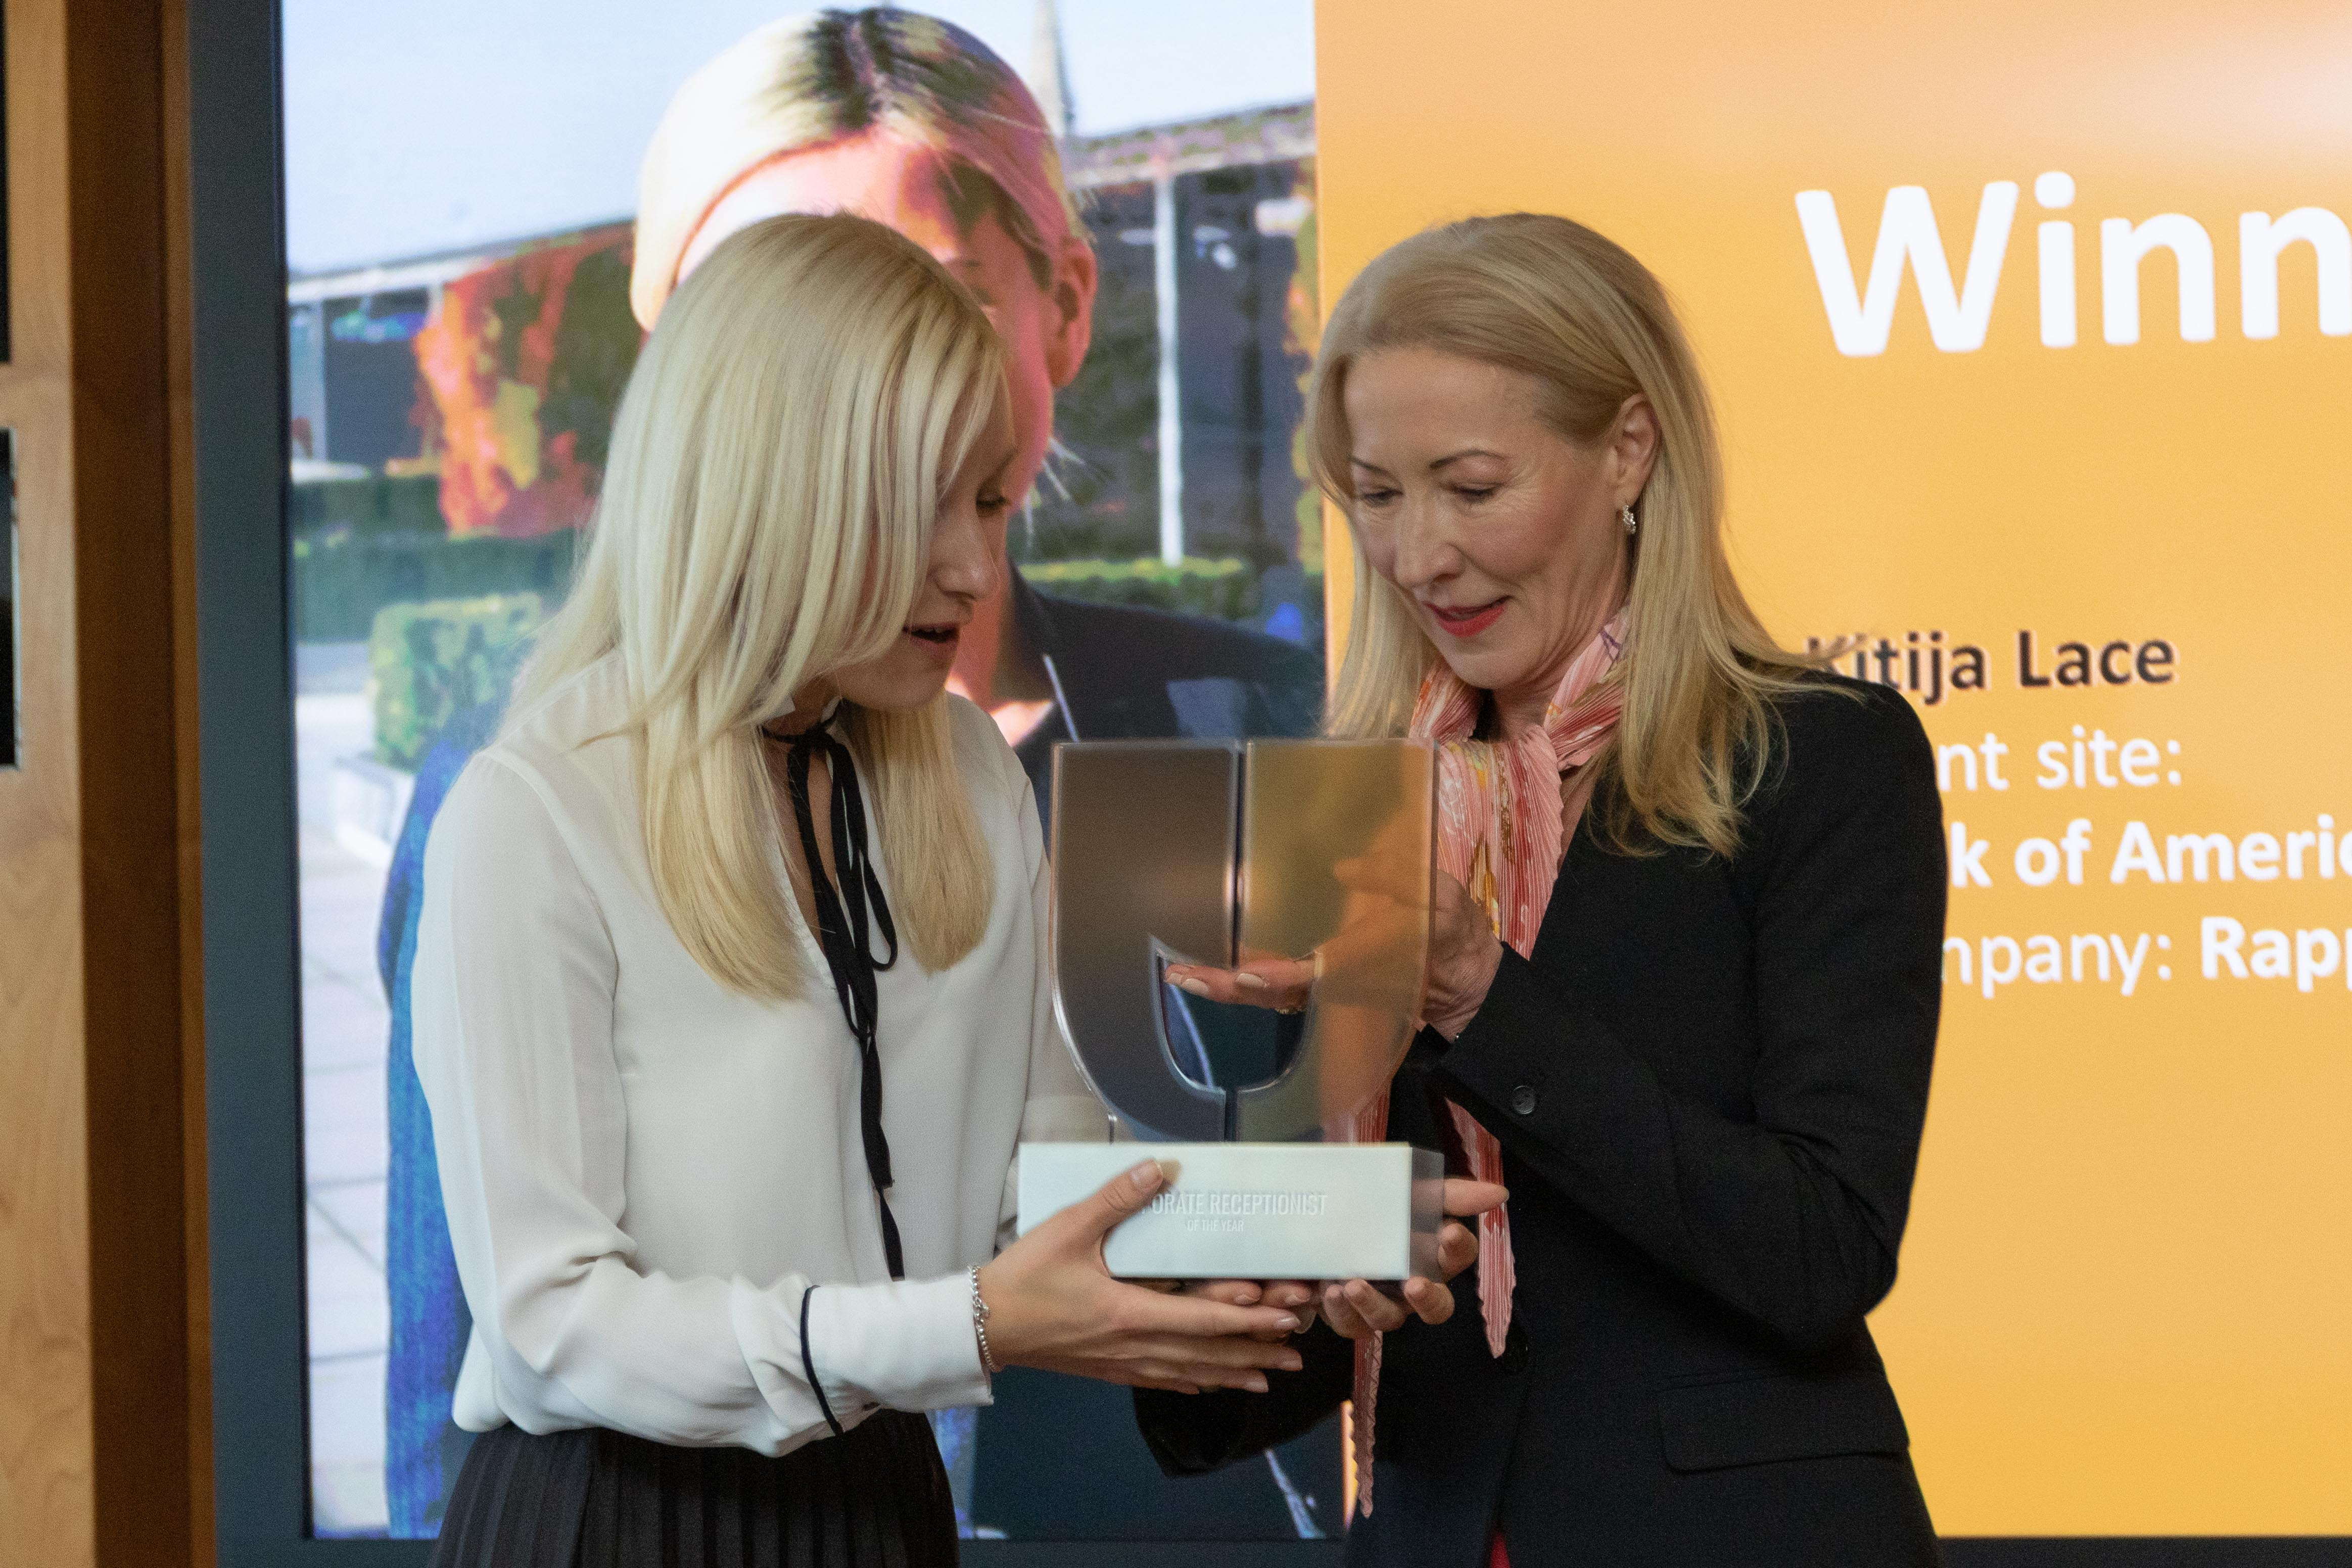 Kitija Lace receives the trophy for Corporate Receptionist of the Year